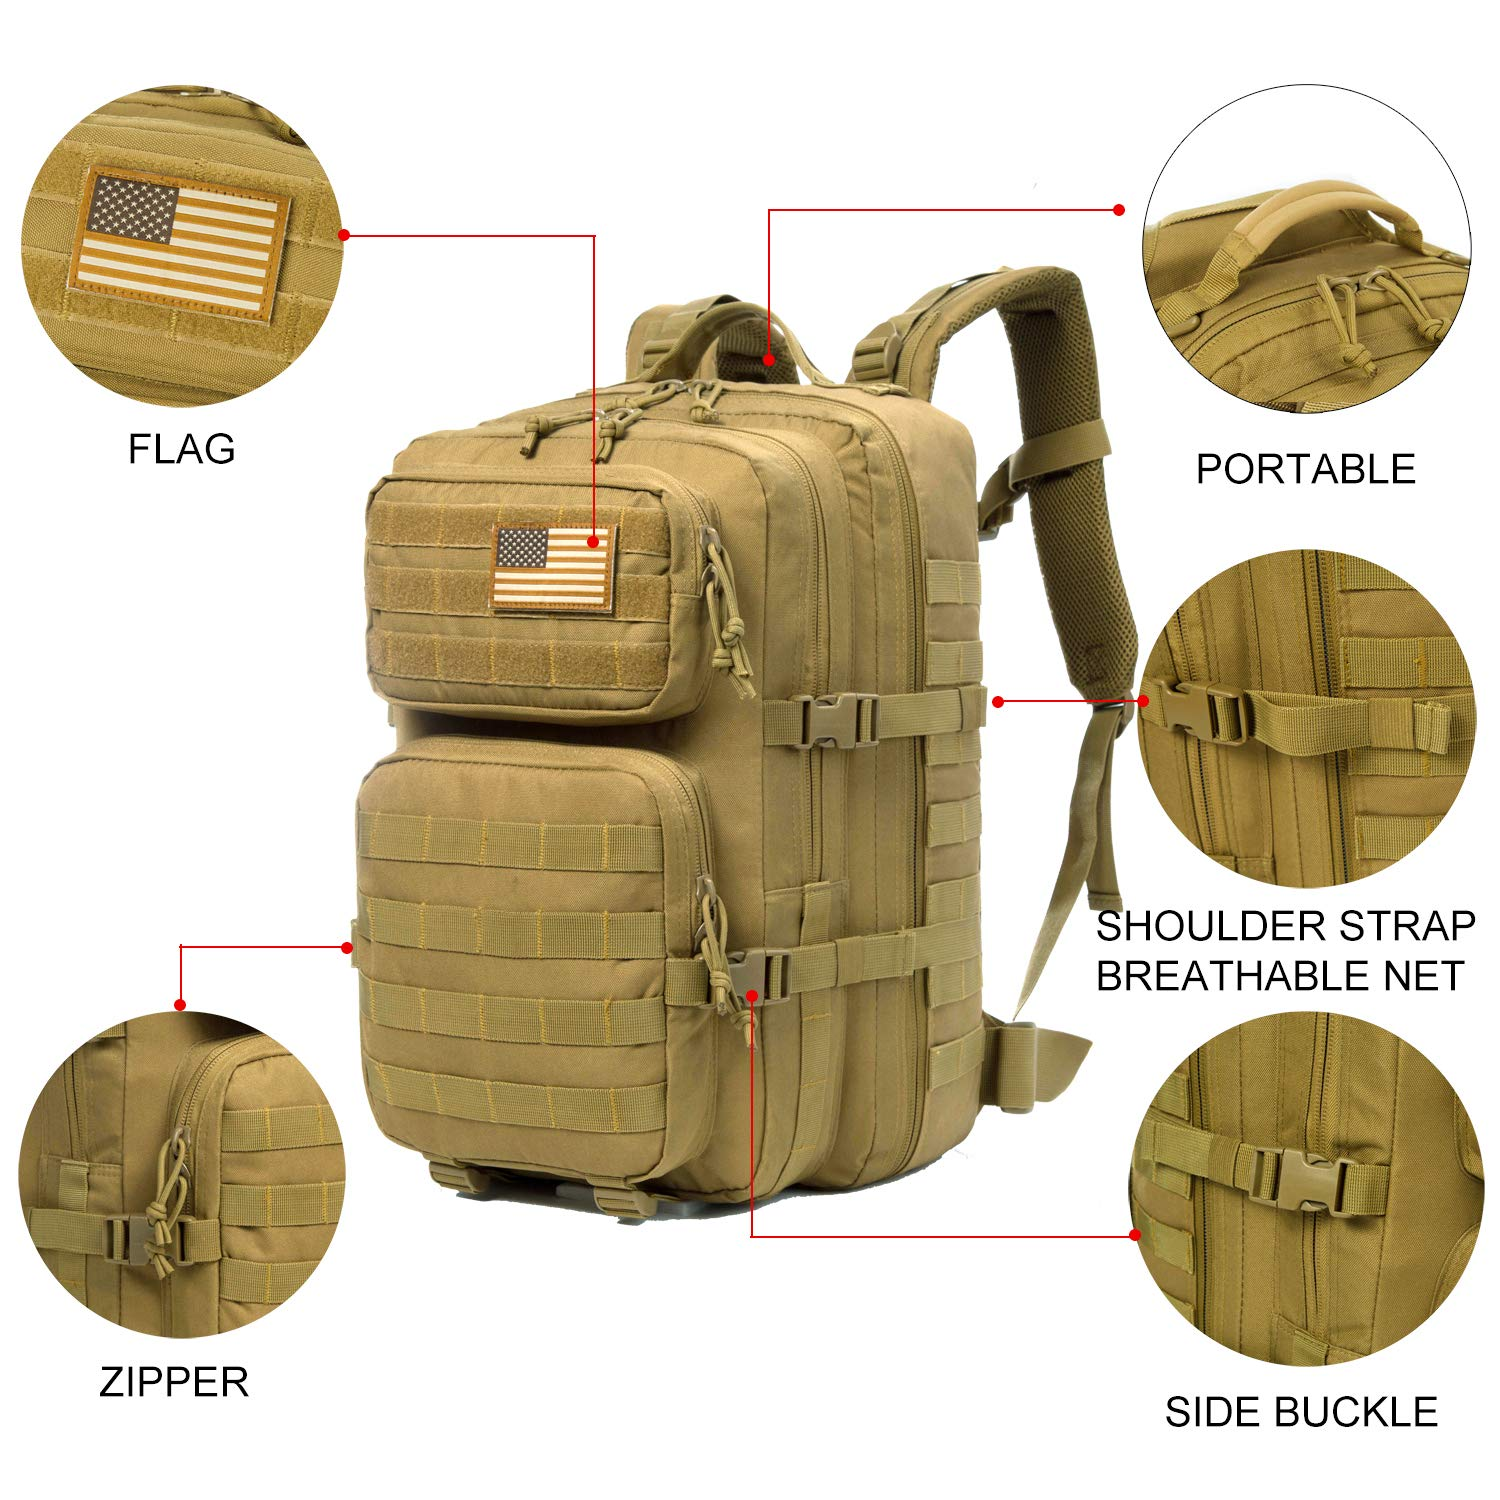 J.CARP Military Tactical Backpack Large 3 Day Assault Pack Army Molle Bug Out Bag, Brown